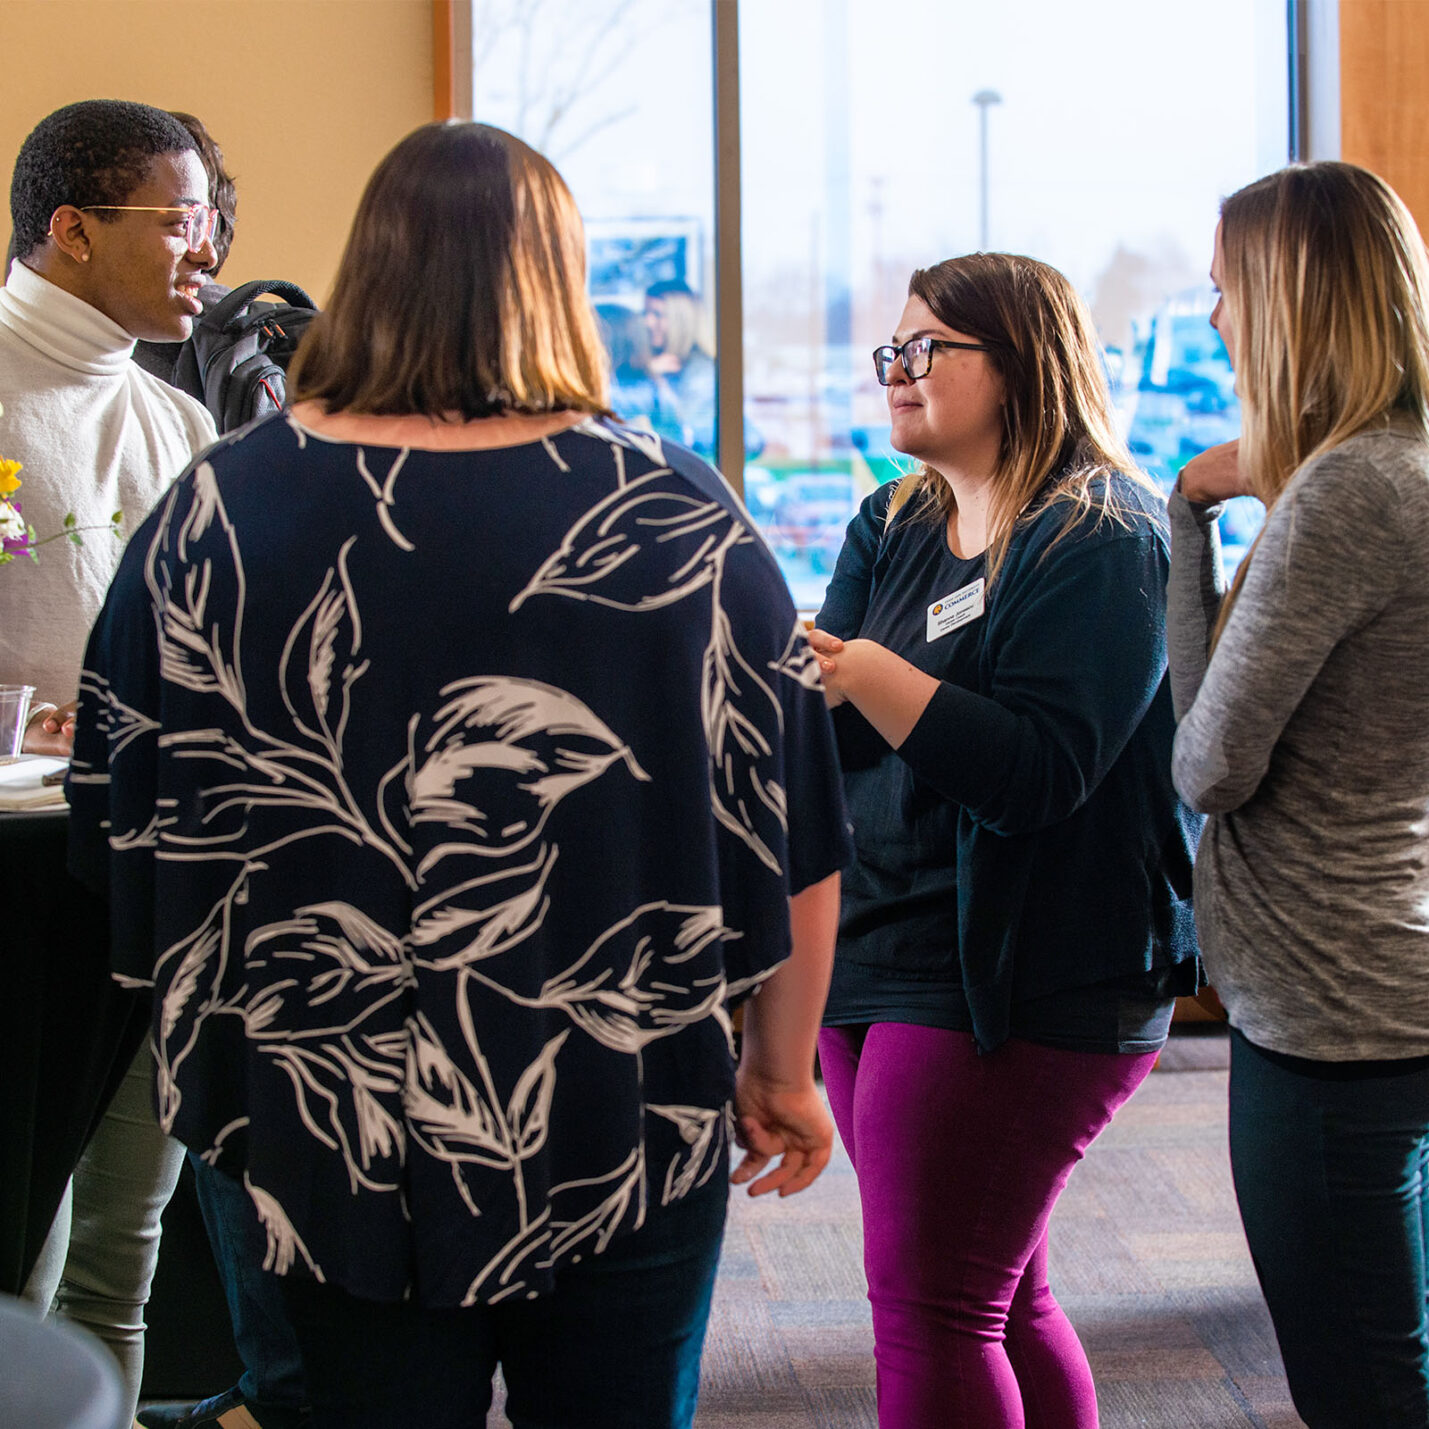 Students and Staff having a conversation during a student organization event.